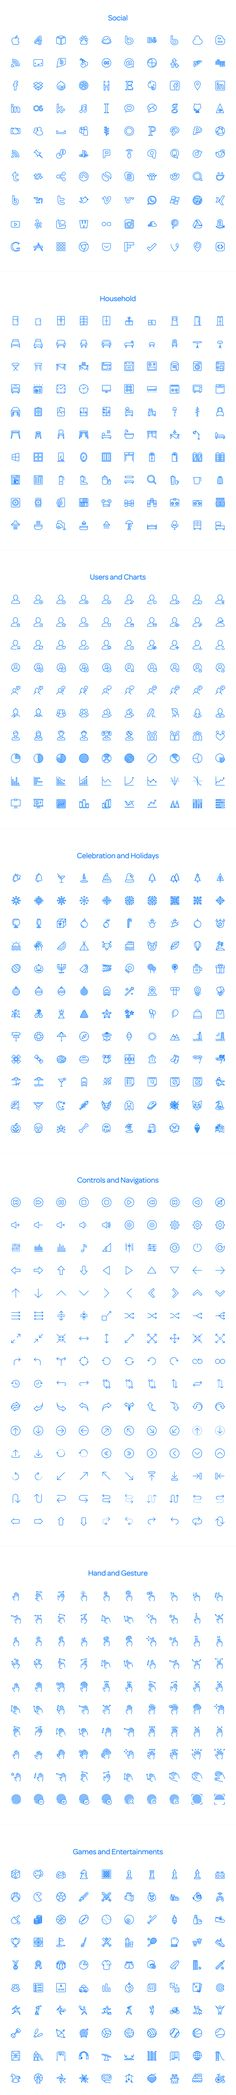 Squid Ink Line Icon Pack by Web Icon Set #design Download: https://creativemarket.com/webiconset/332054-Squid-Ink-Line-Icon-Pack?u=ksioks